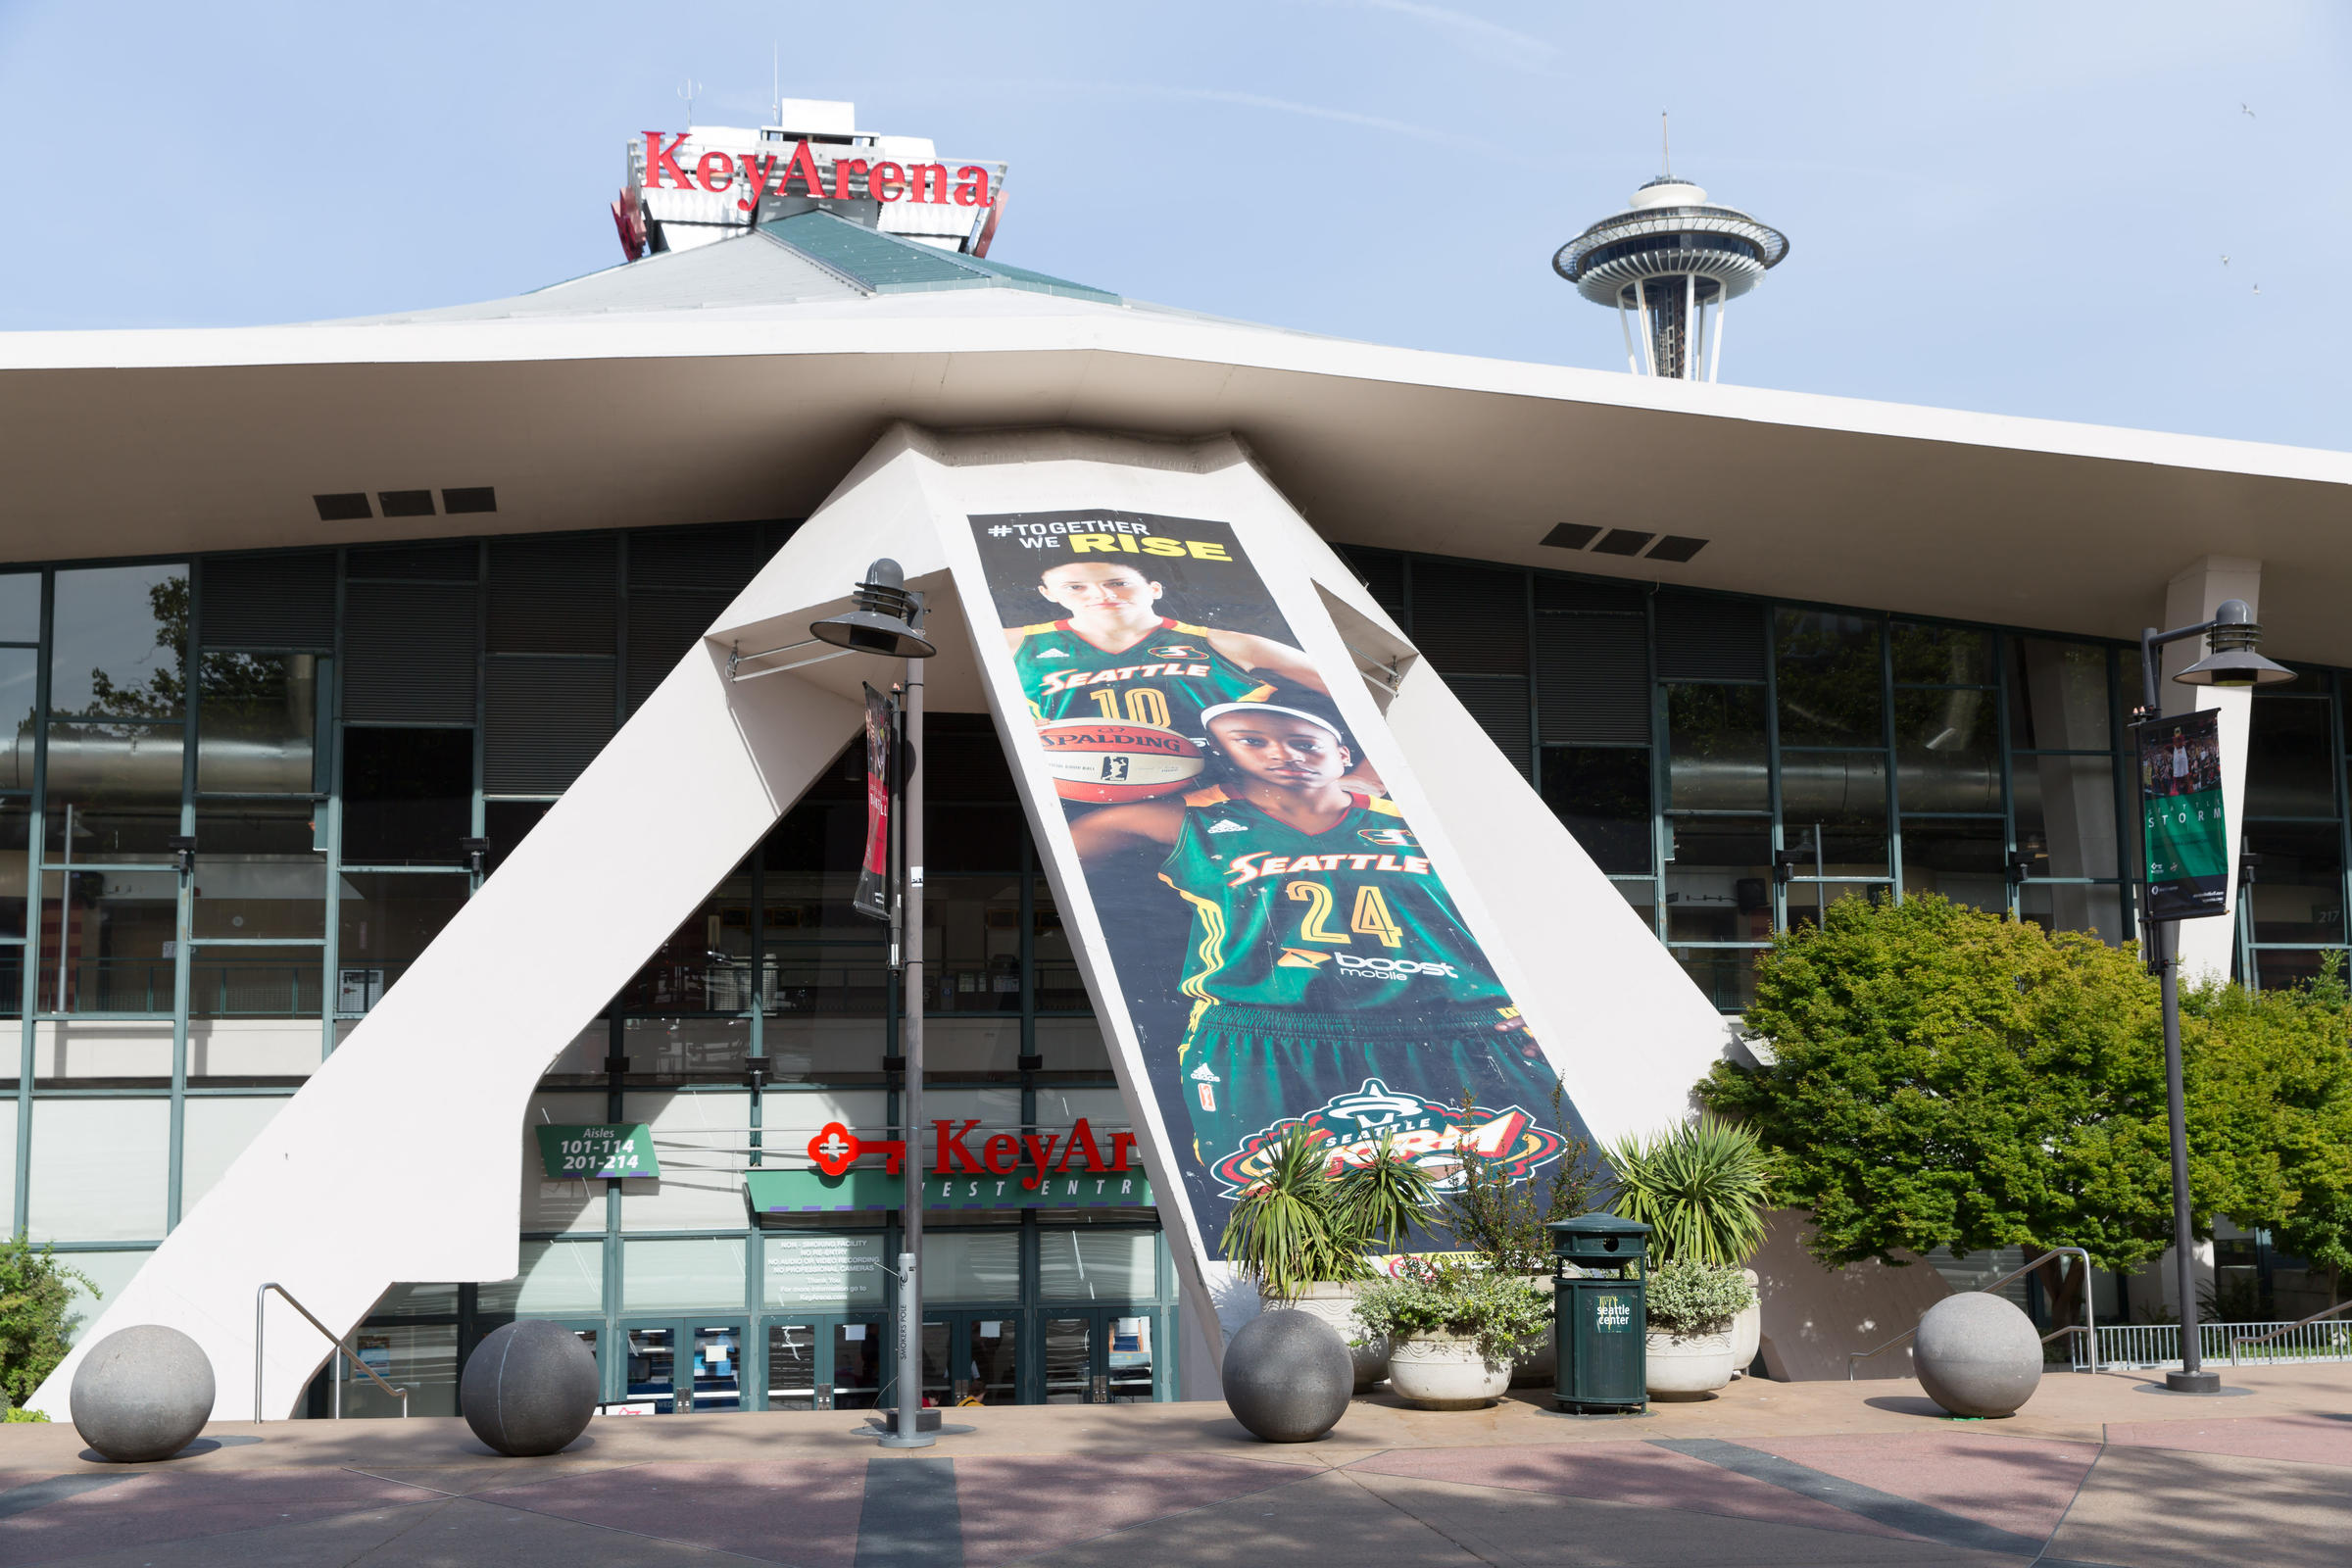 Seattle moves ahead with KeyArena remodel to attract NBA, NHL